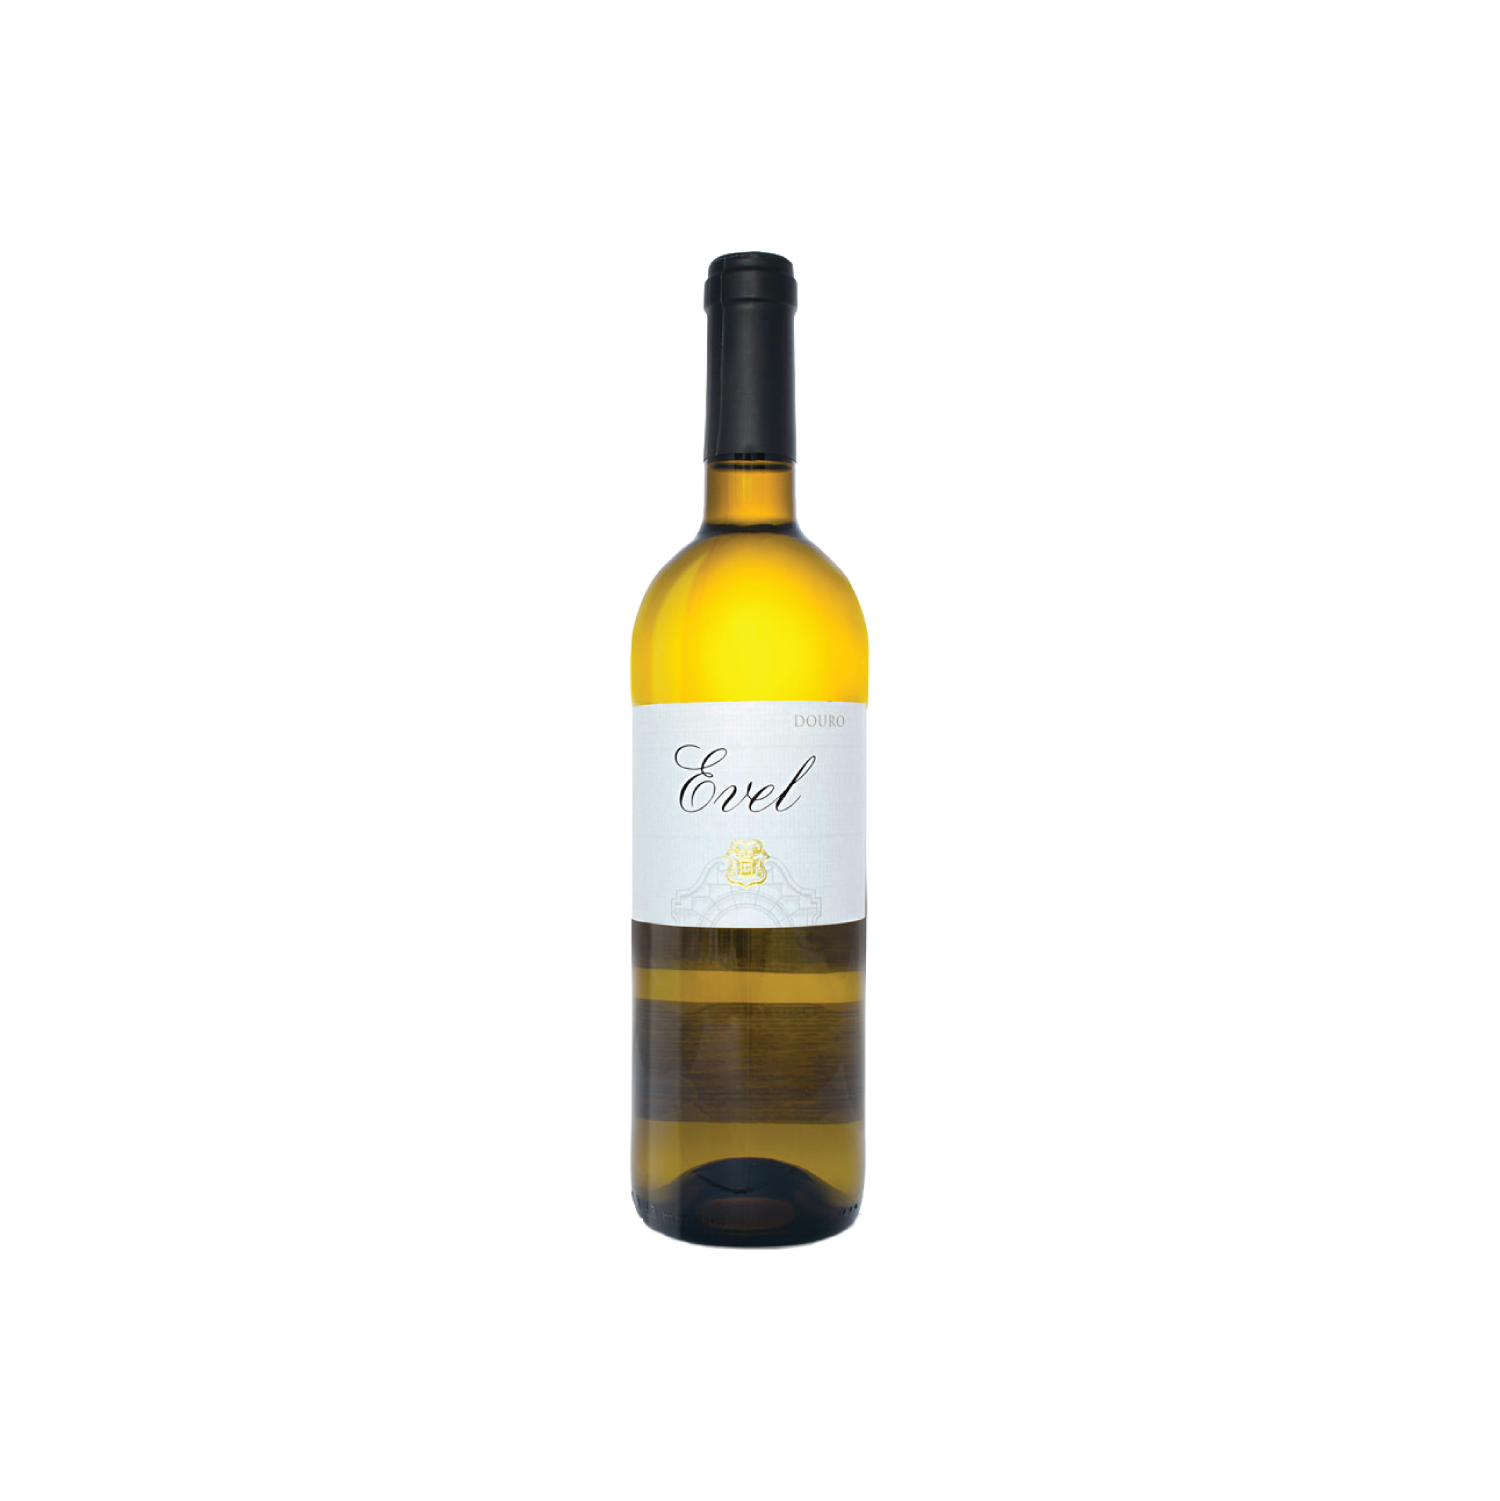 Evel Vinho Branco - There's more than just Port in Portugal! The aromatic blend of flowers, orchard fruit and melons in this wine will complement any summer dish, from seafood to salad.$18.49 (750ml)Douro, Portugal